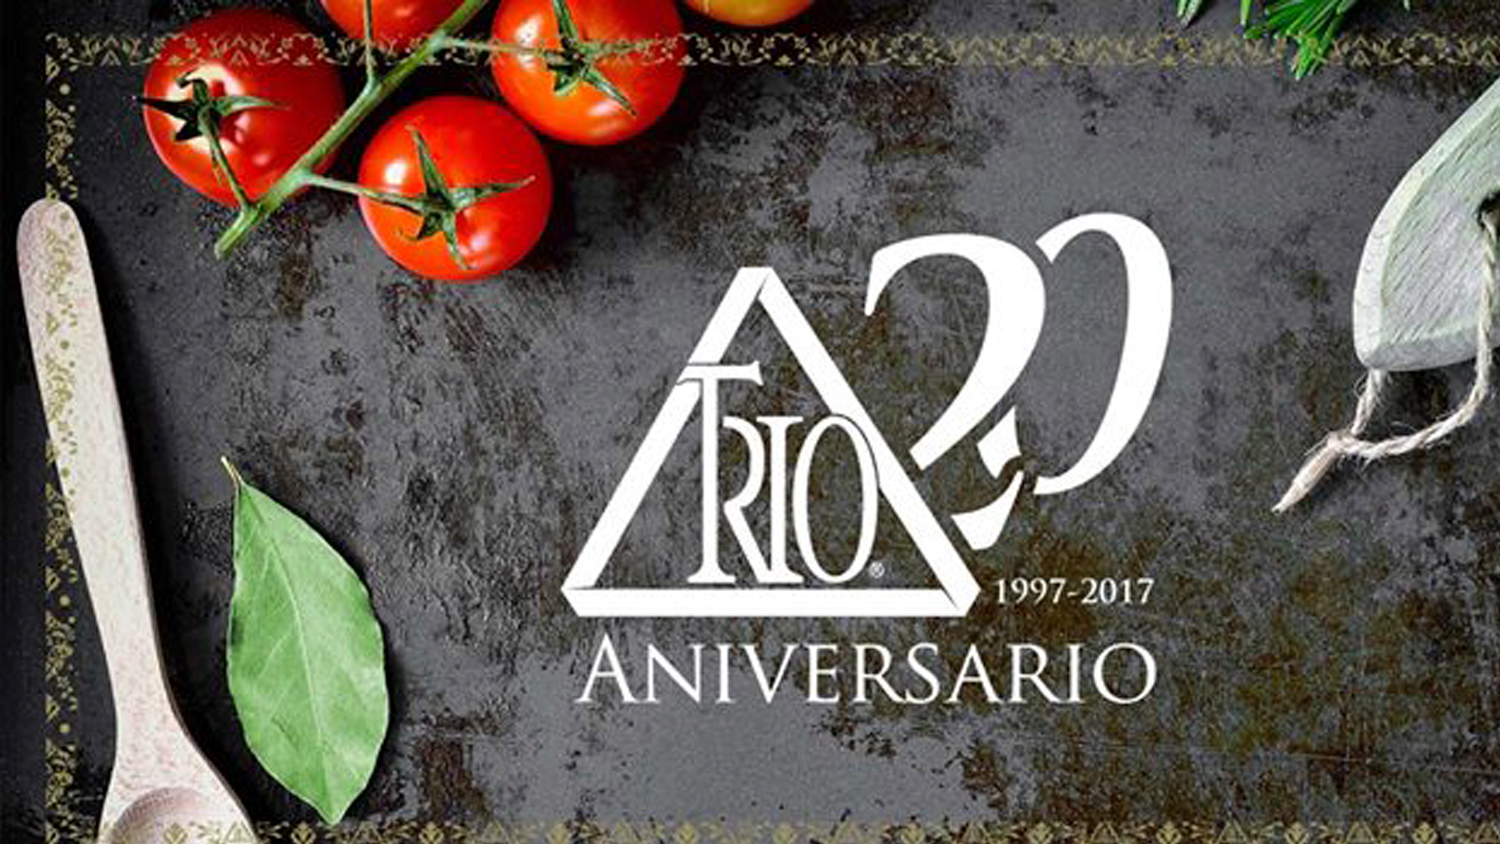 Trio Restaurant Celebrates 20th Anniversary with Specials